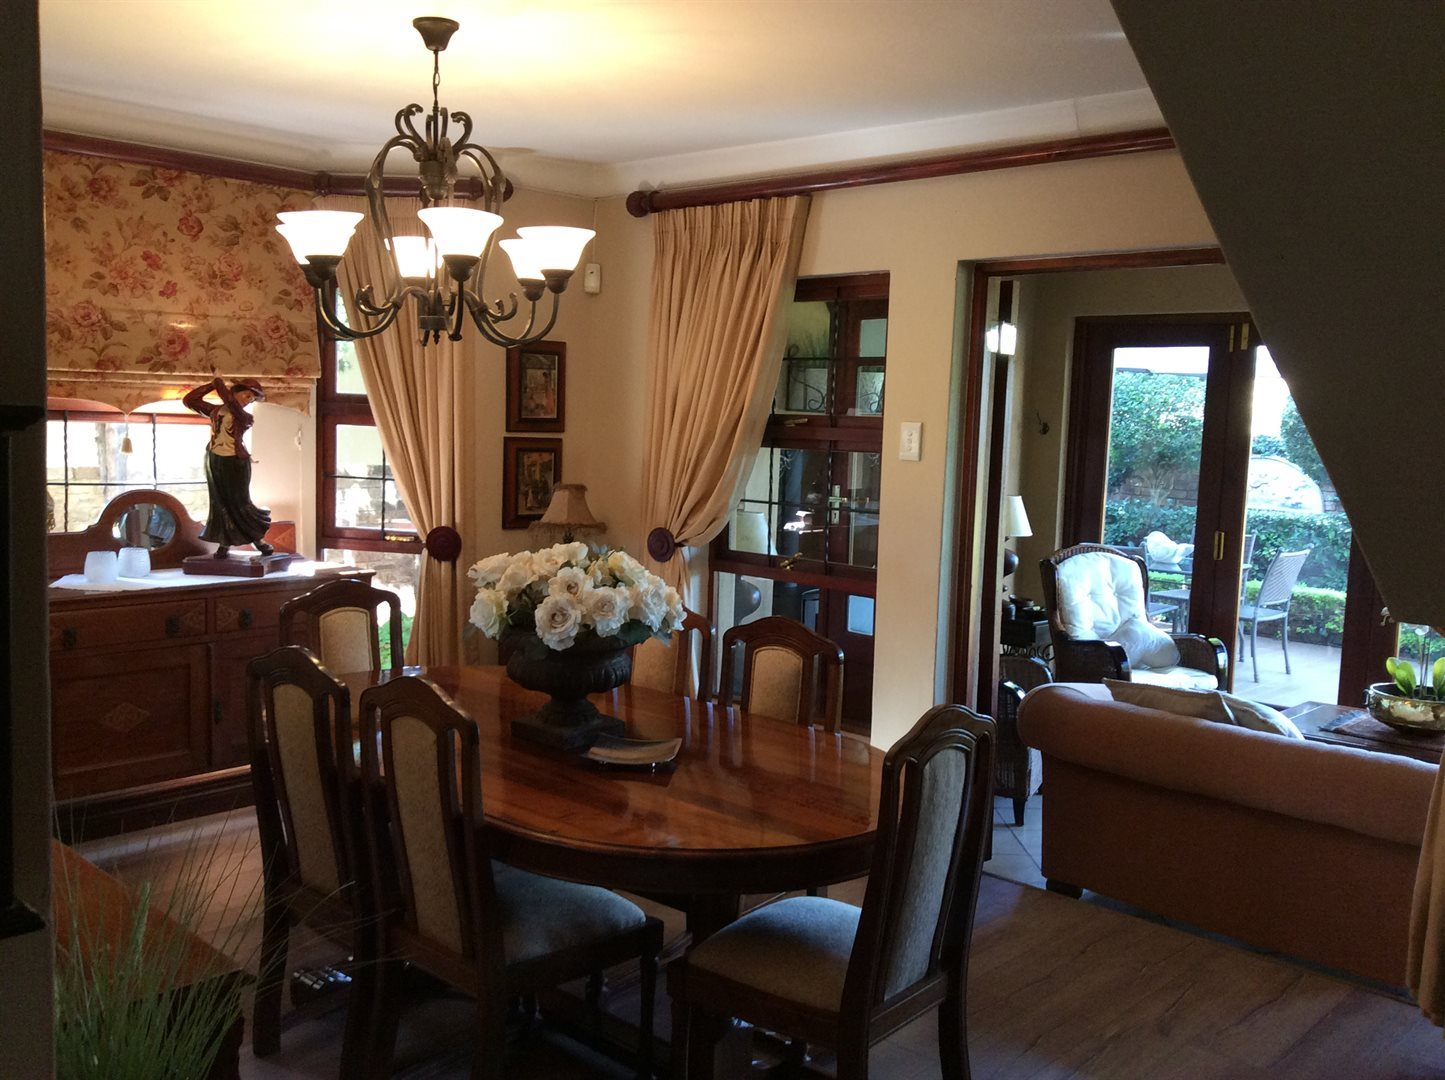 3 Bedroom House for sale in Montana Park ENT0074858 : photo#13